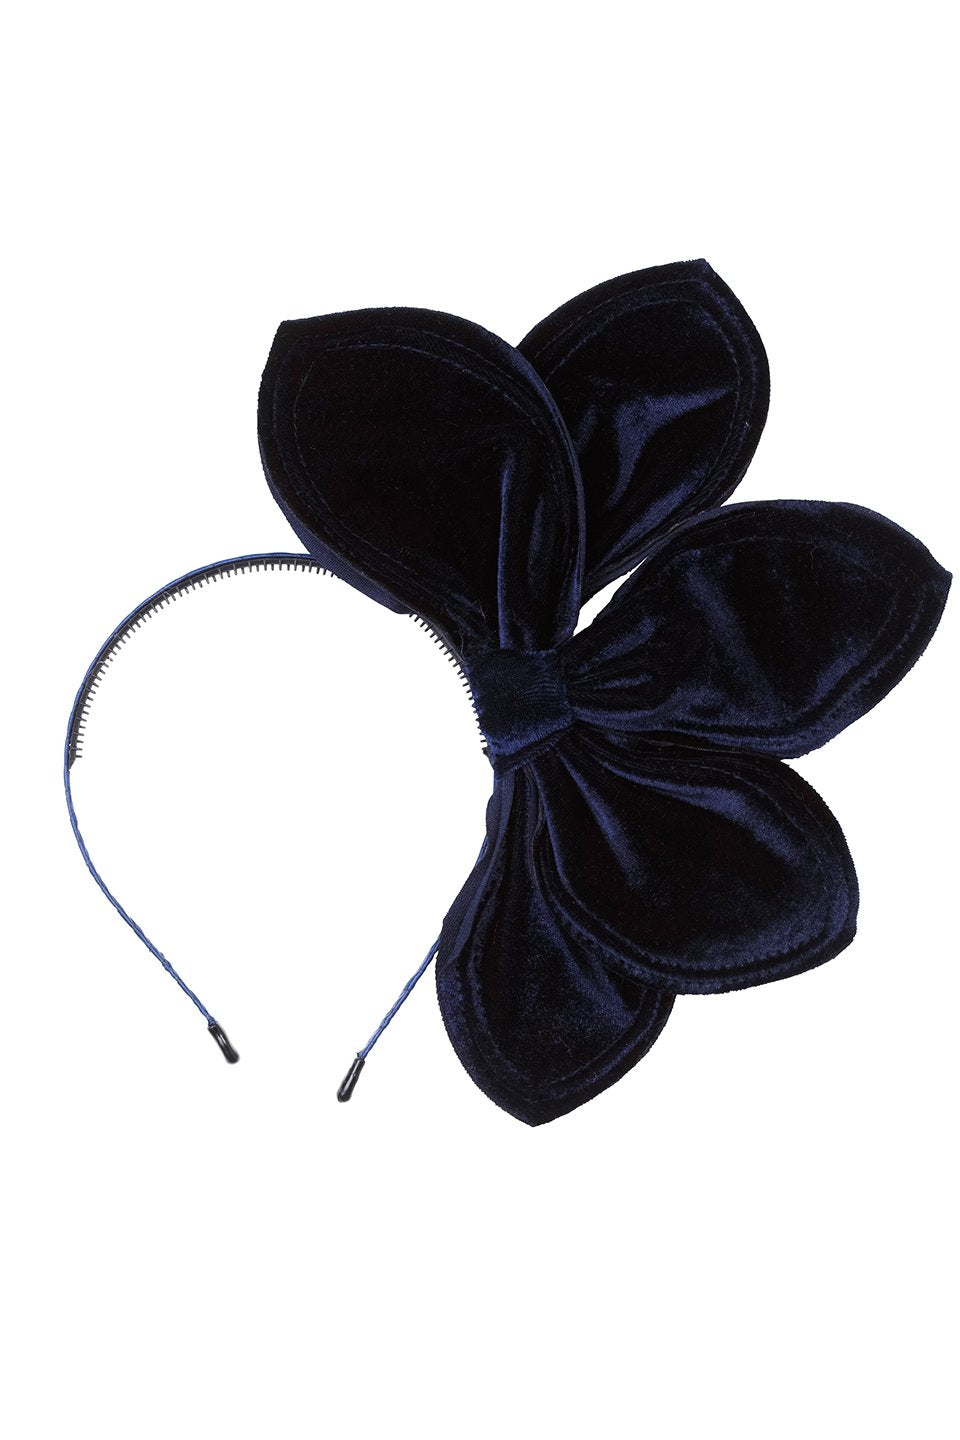 Five Petals Velvet Headband - Navy - PROJECT 6, modest fashion